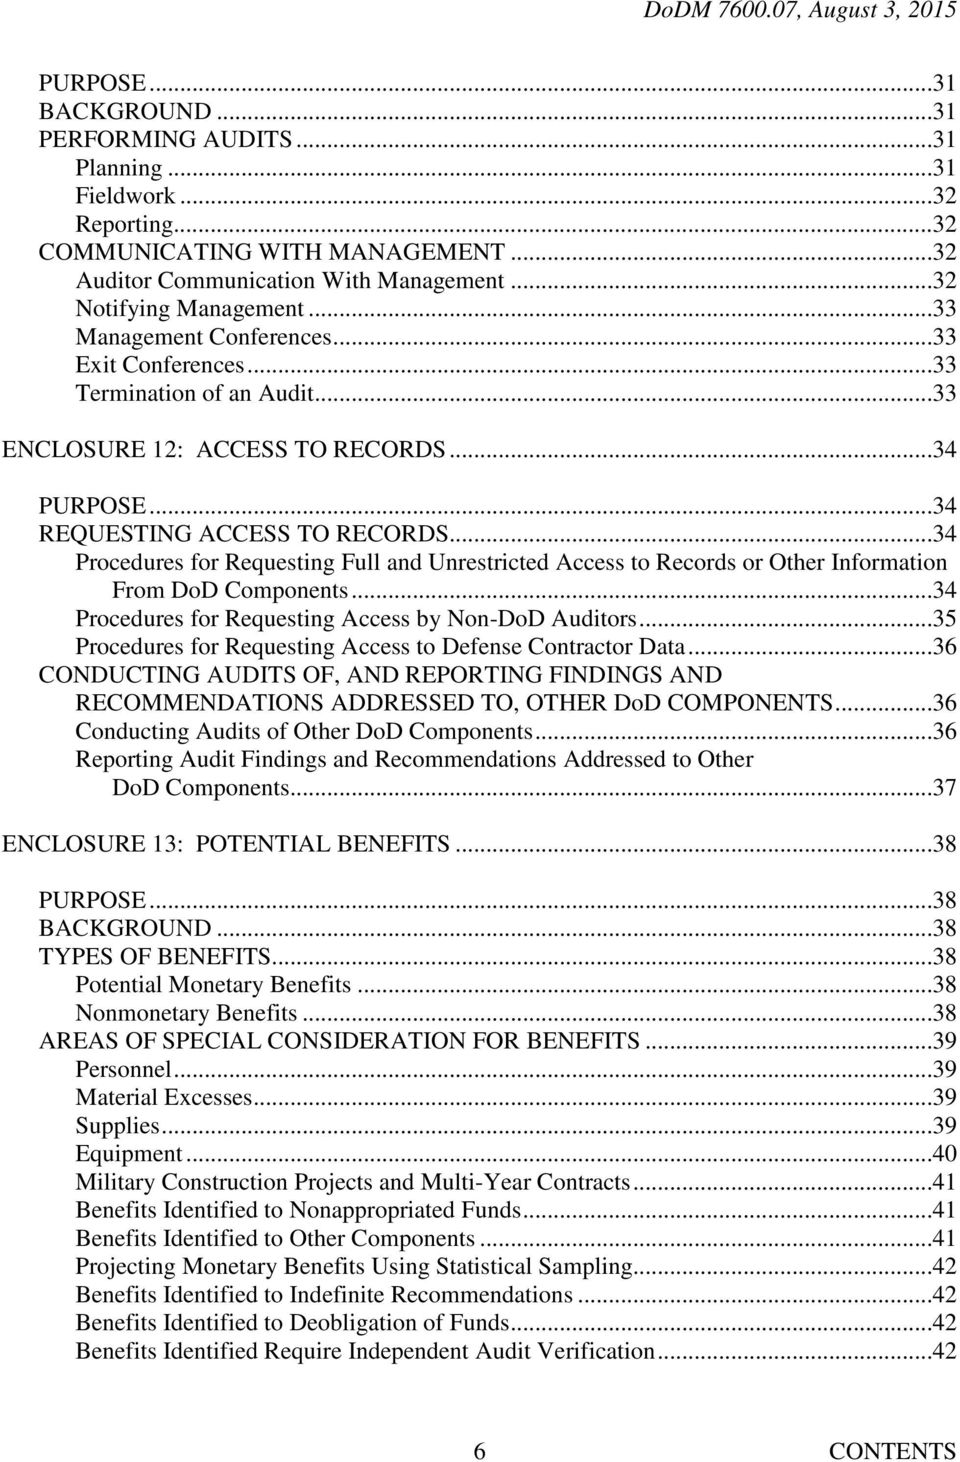 ..34 Procedures for Requesting Full and Unrestricted Access to Records or Other Information From DoD Components...34 Procedures for Requesting Access by Non-DoD Auditors.